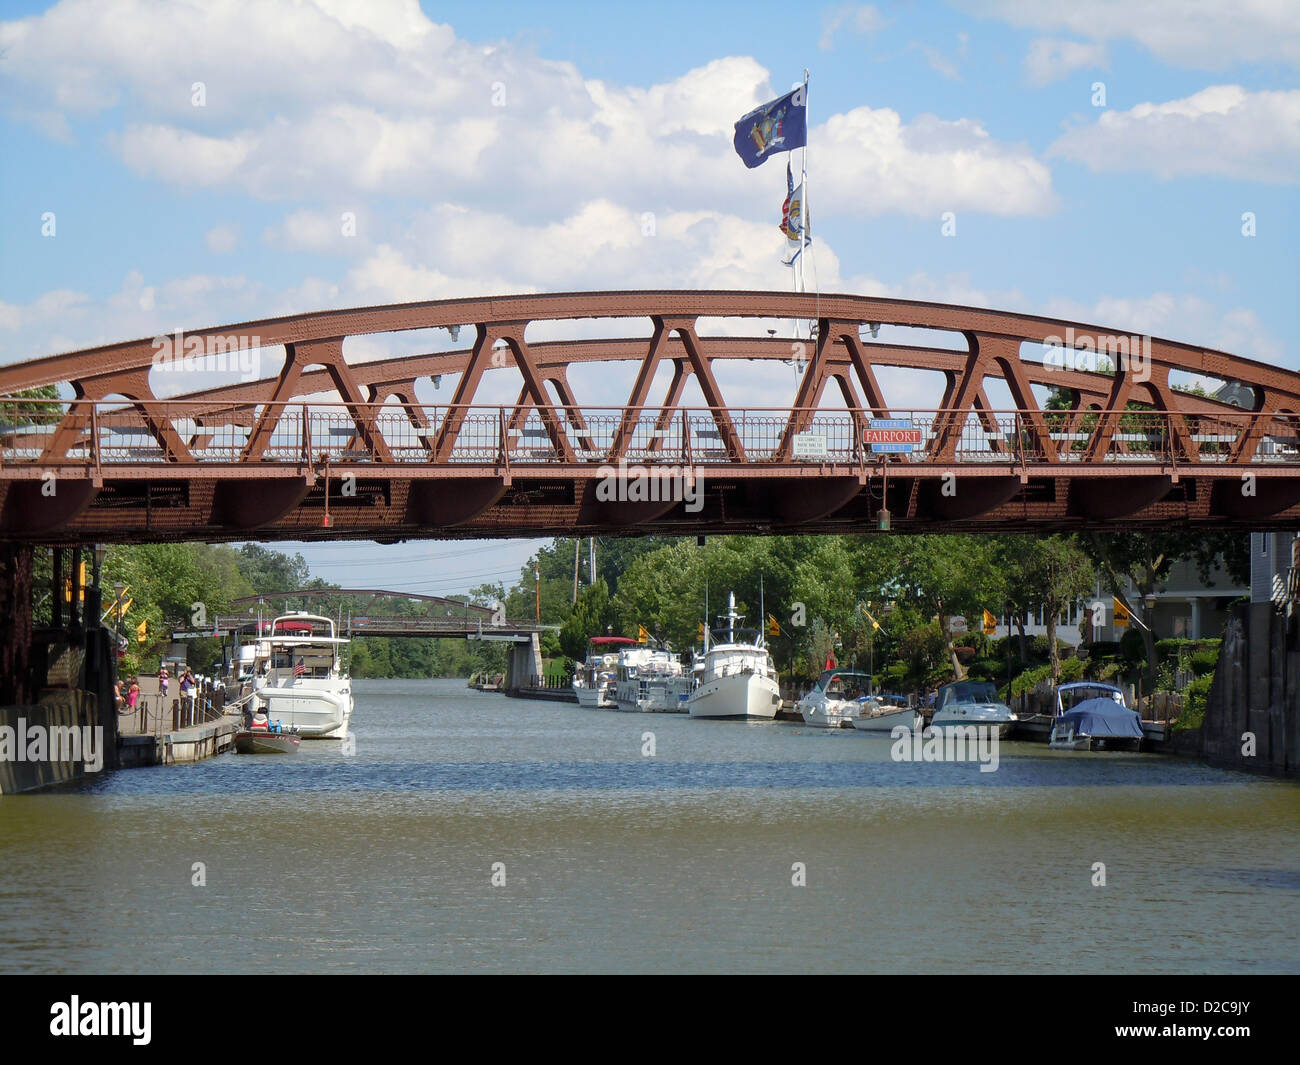 Lift Bridge, Fairport, New York - Stock Image